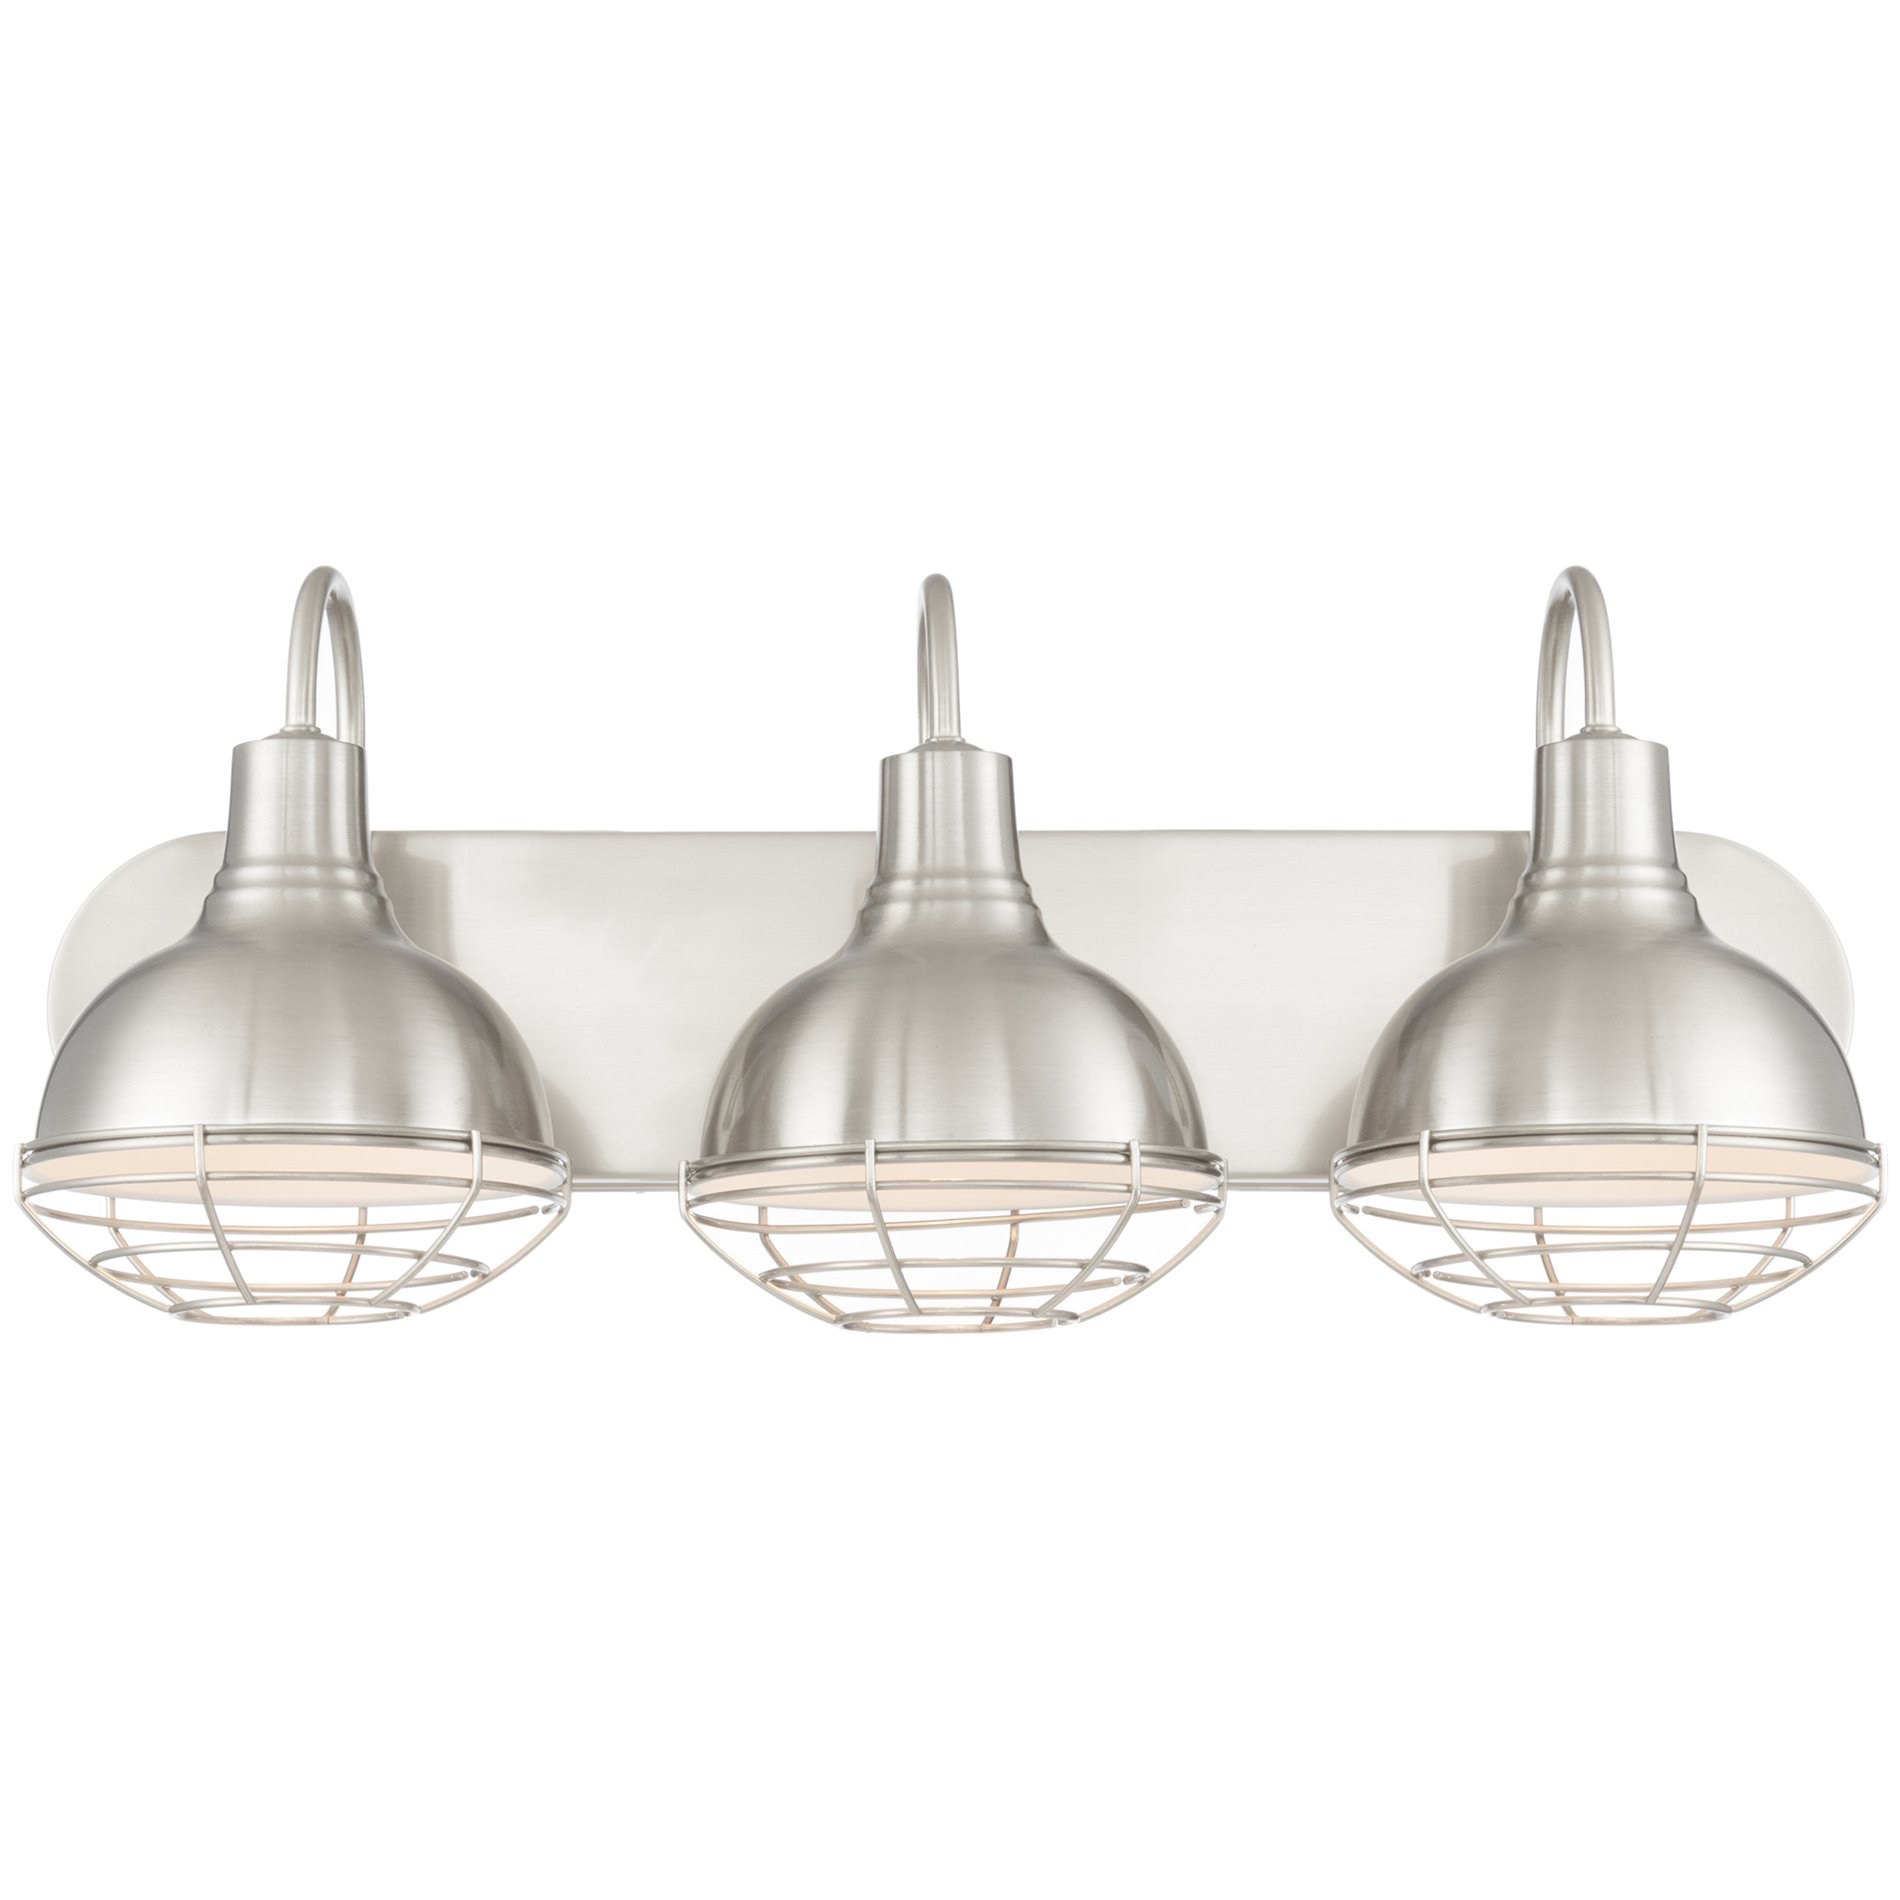 Revel liberty 24 3 light industrial vanity bathroom light - 8 light bathroom fixture brushed nickel ...